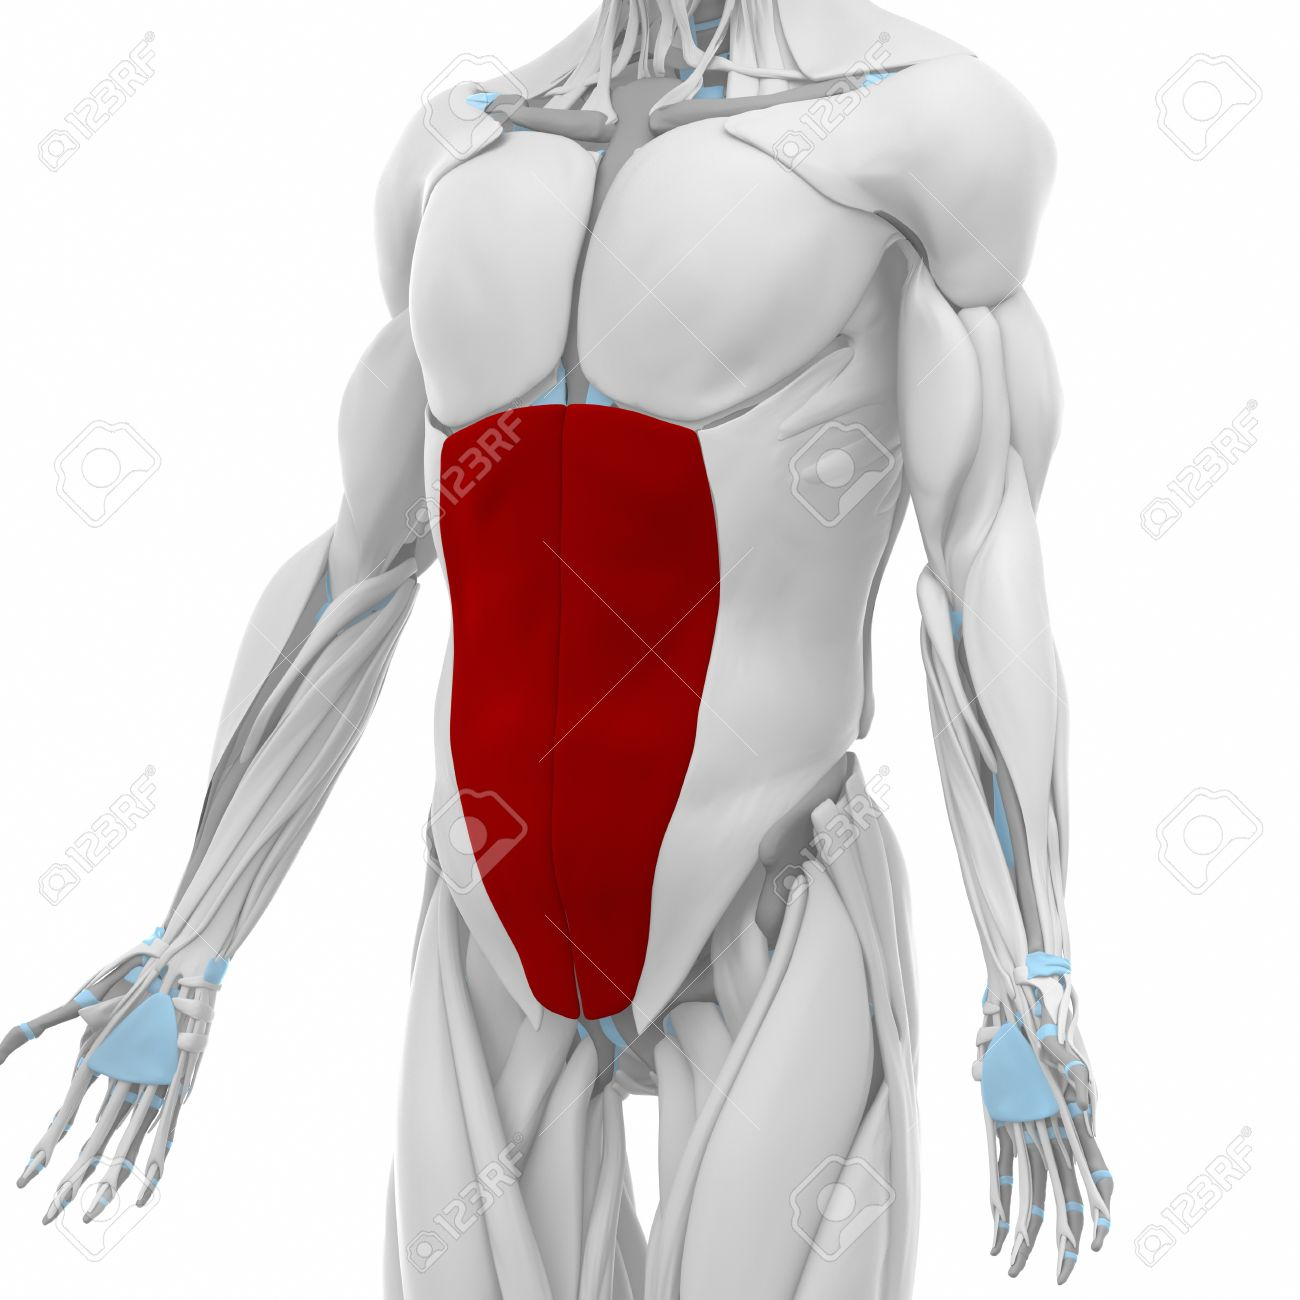 External Abdominal Oblique Muscles Anatomy Map Stock Photo